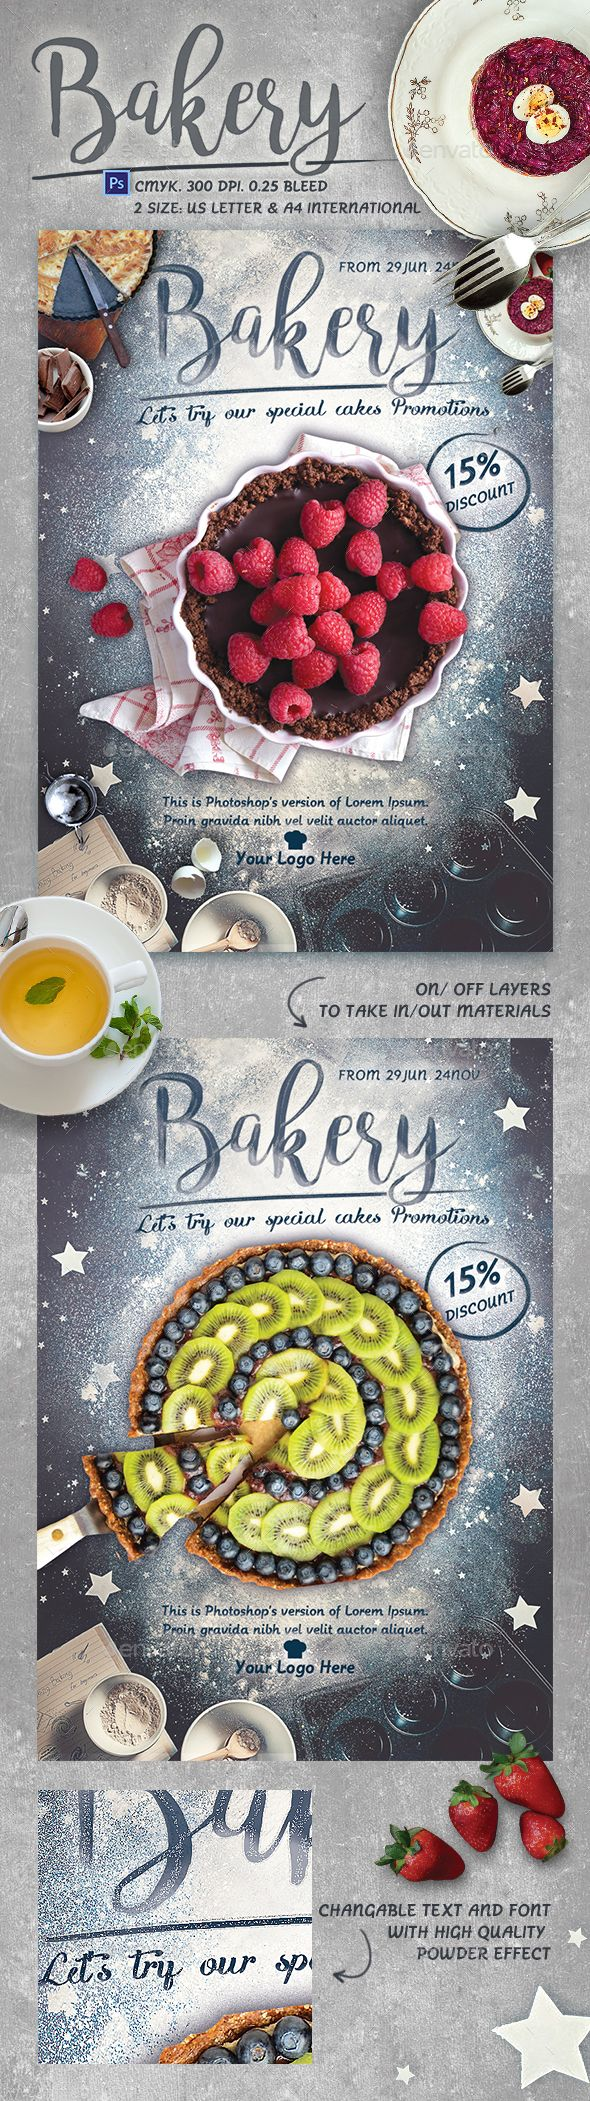 Bakery Promotion Flyer PSD Template • Only available here ➝ http://graphicriver.net/item/bakery-promotion-flyer-template/15854476?ref=pxcr